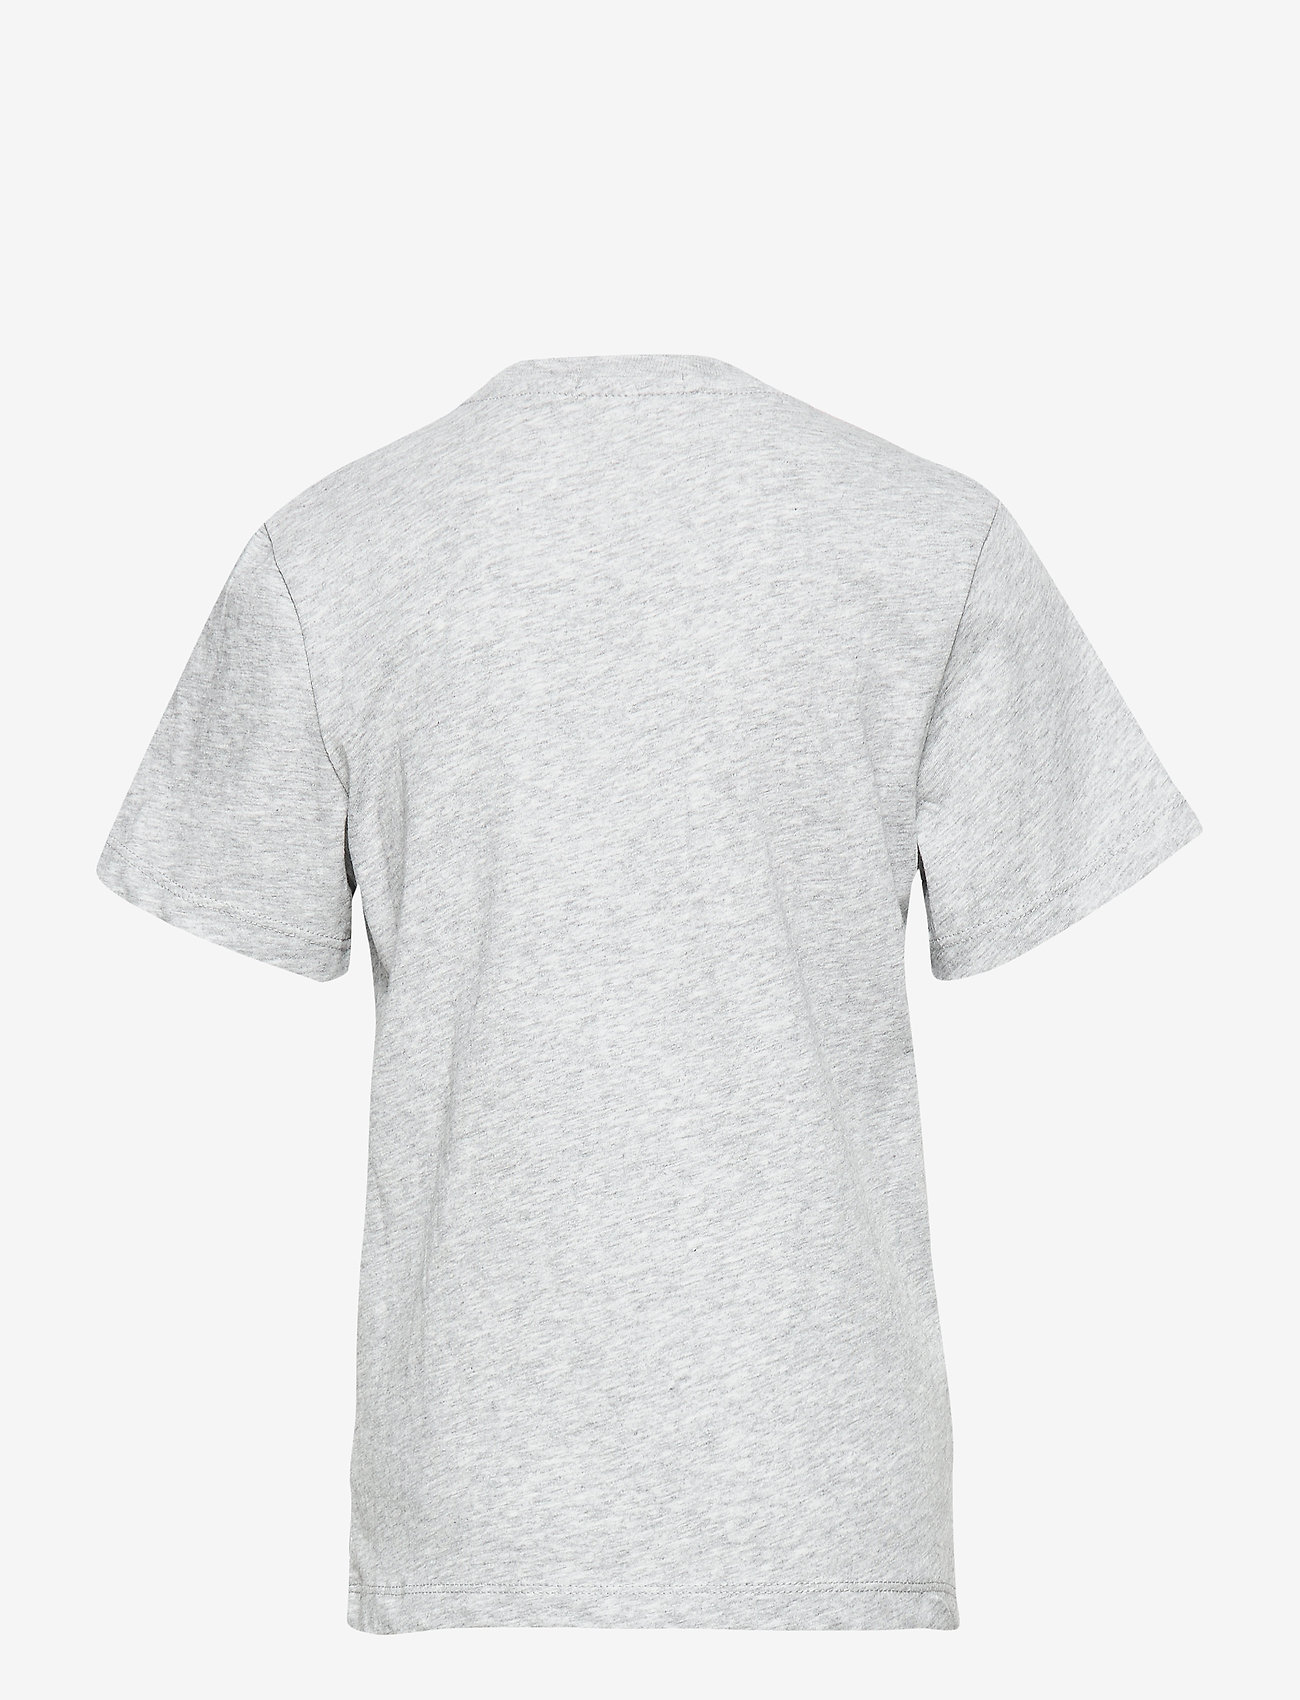 Calvin Klein - MONOGRAM LOGO T-SHIRT - korte mouwen - light grey heather - 1